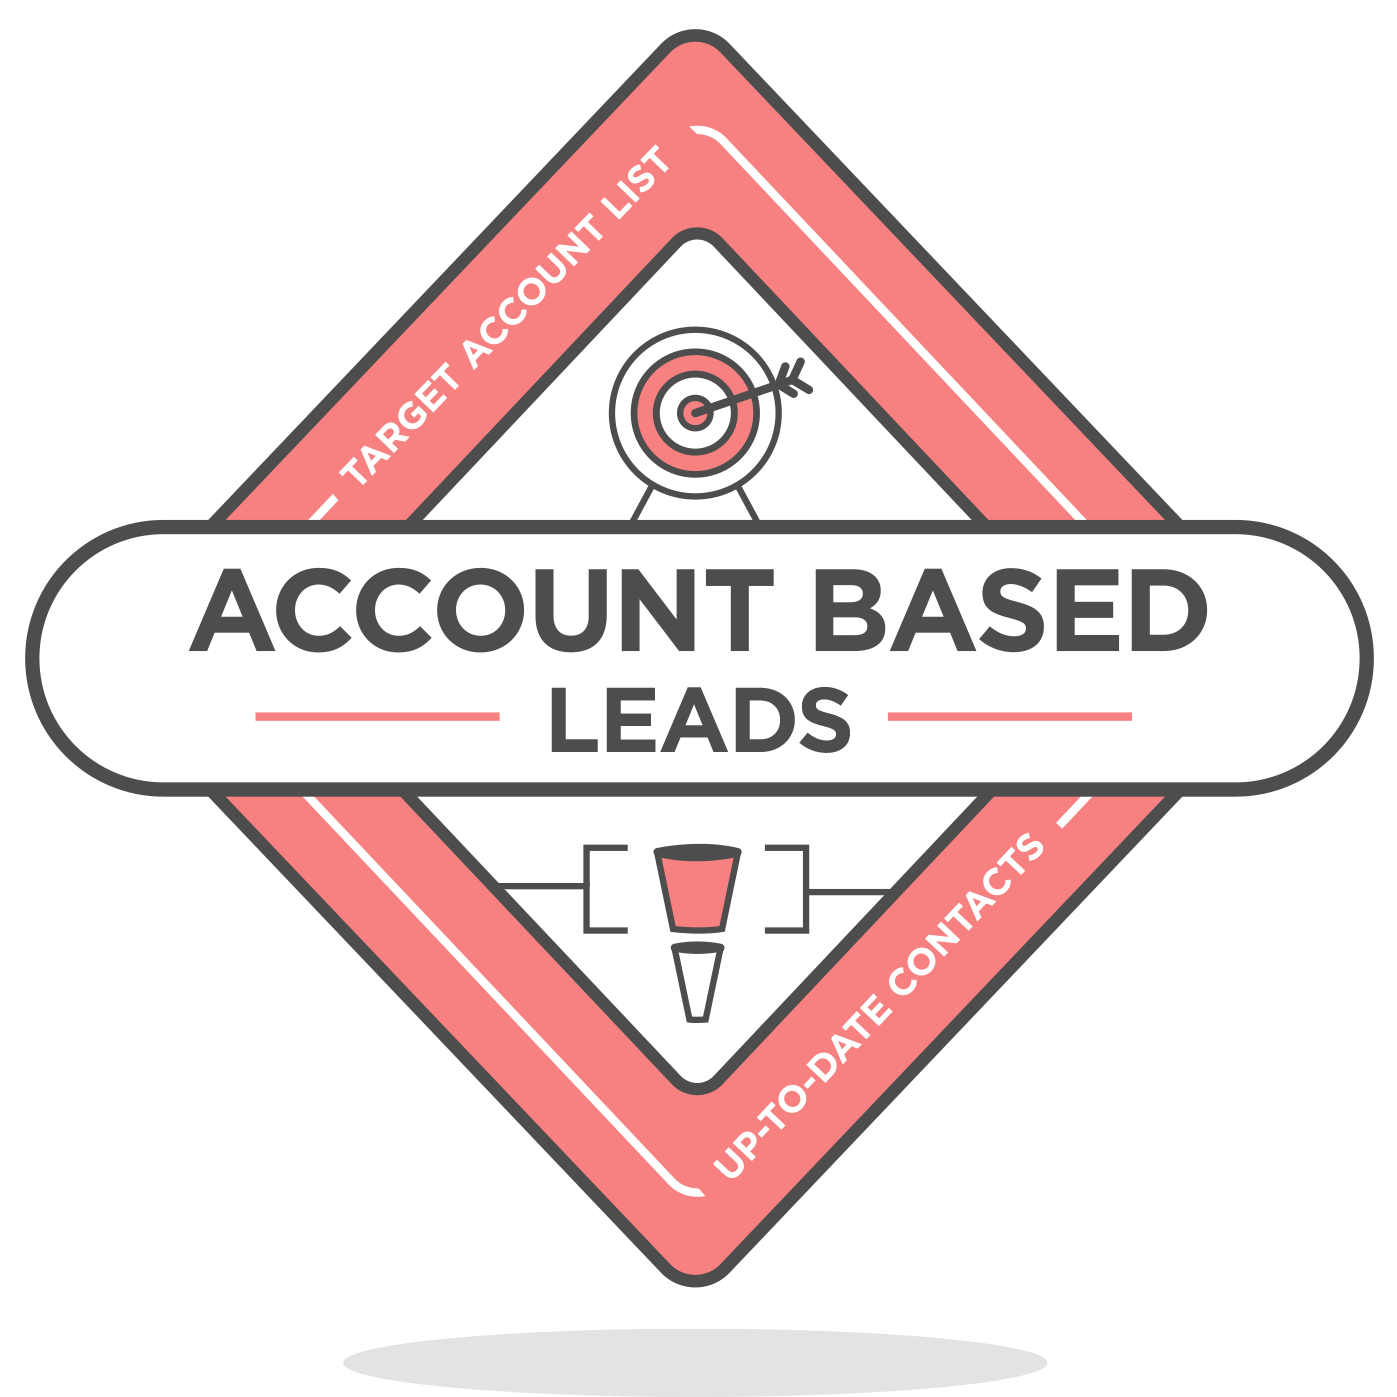 account-based leads badge icon